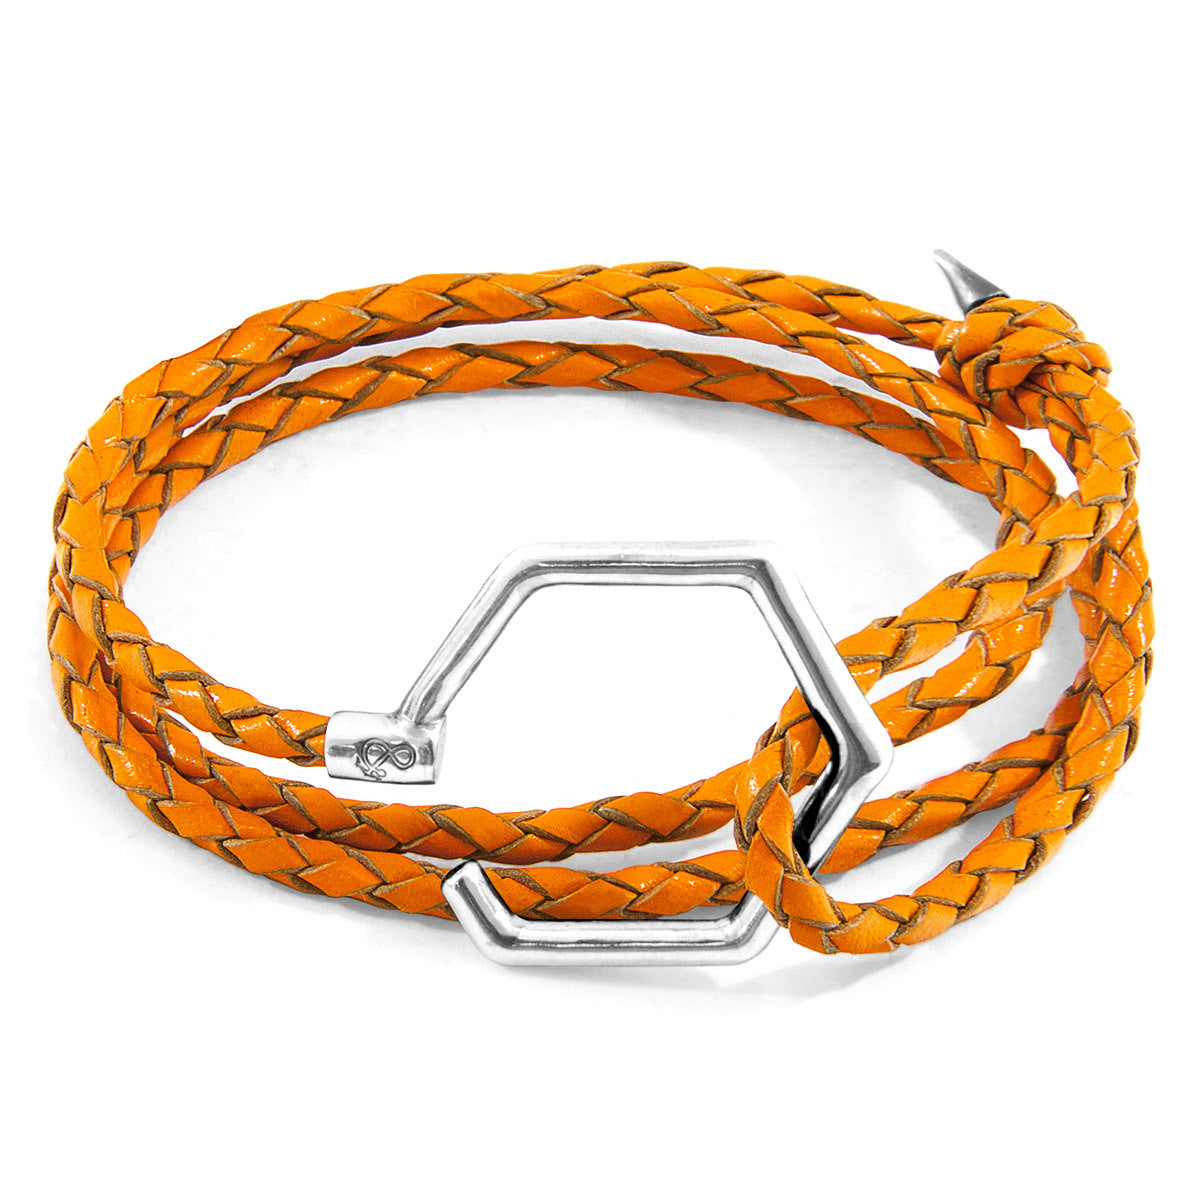 Bracelet Silver & Leather Fire Orange Nautical Jewelry